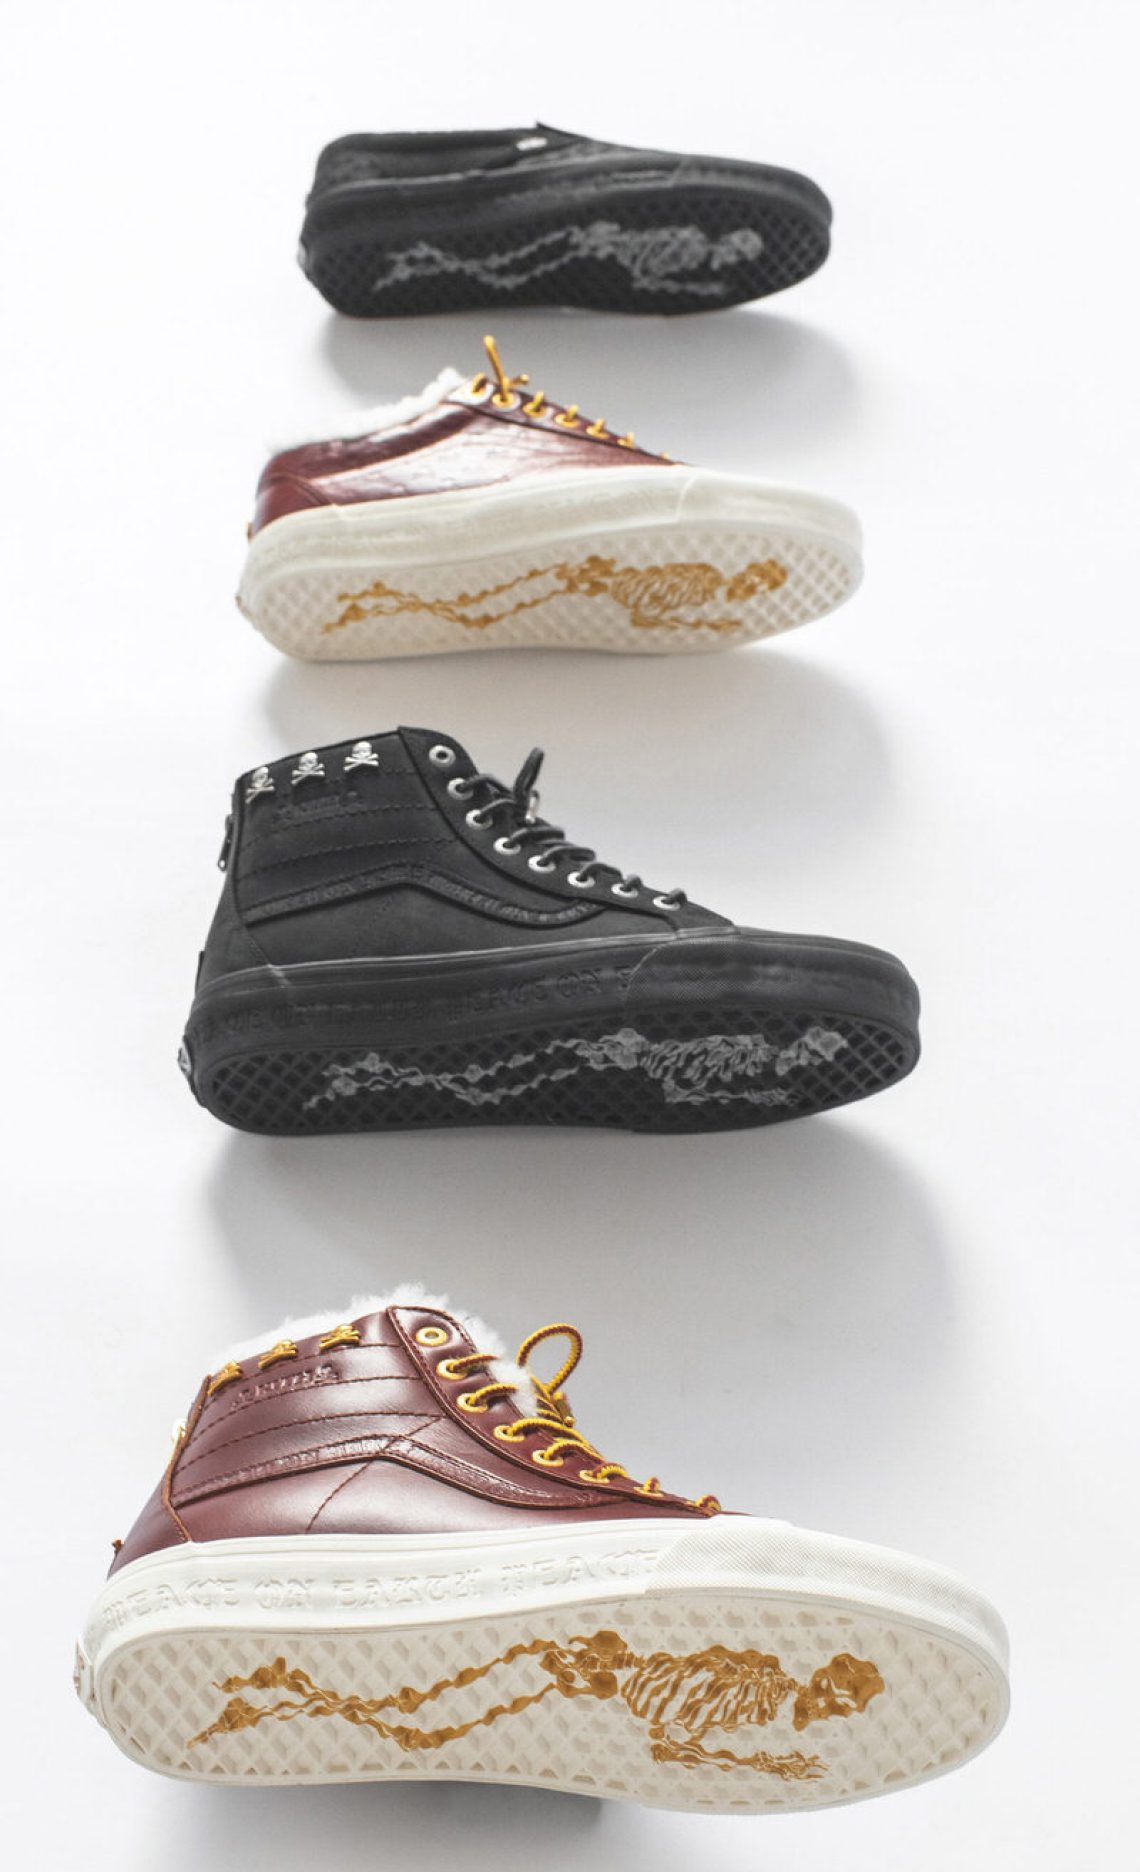 Kith x mastermind WORLD x Vans Collection